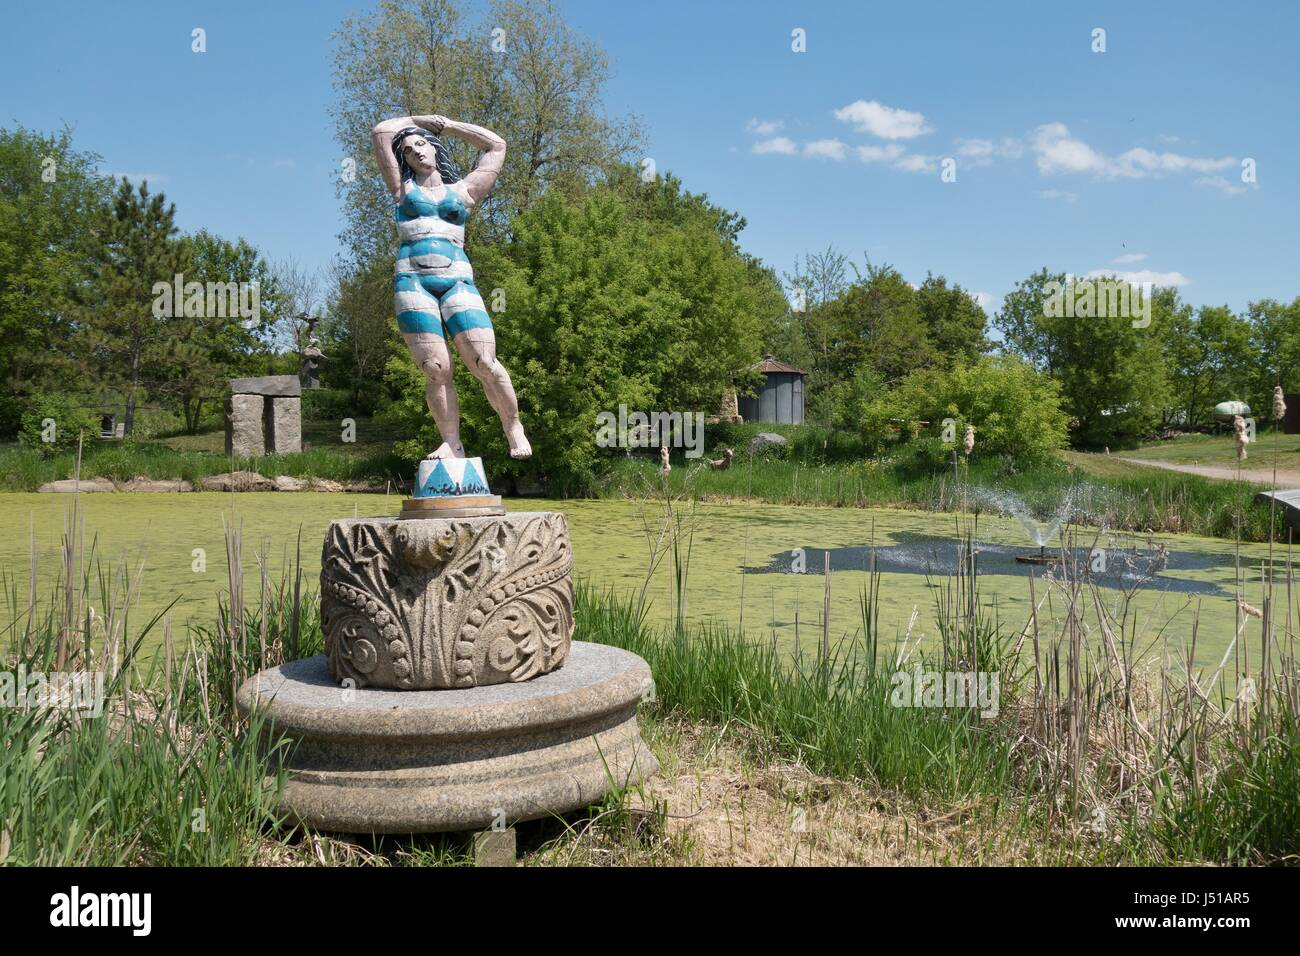 A sculpture of a woman in an old fashioned bathing suit, near a pond, at Big Stone Mini Golf and Sculpture Garden - Stock Image